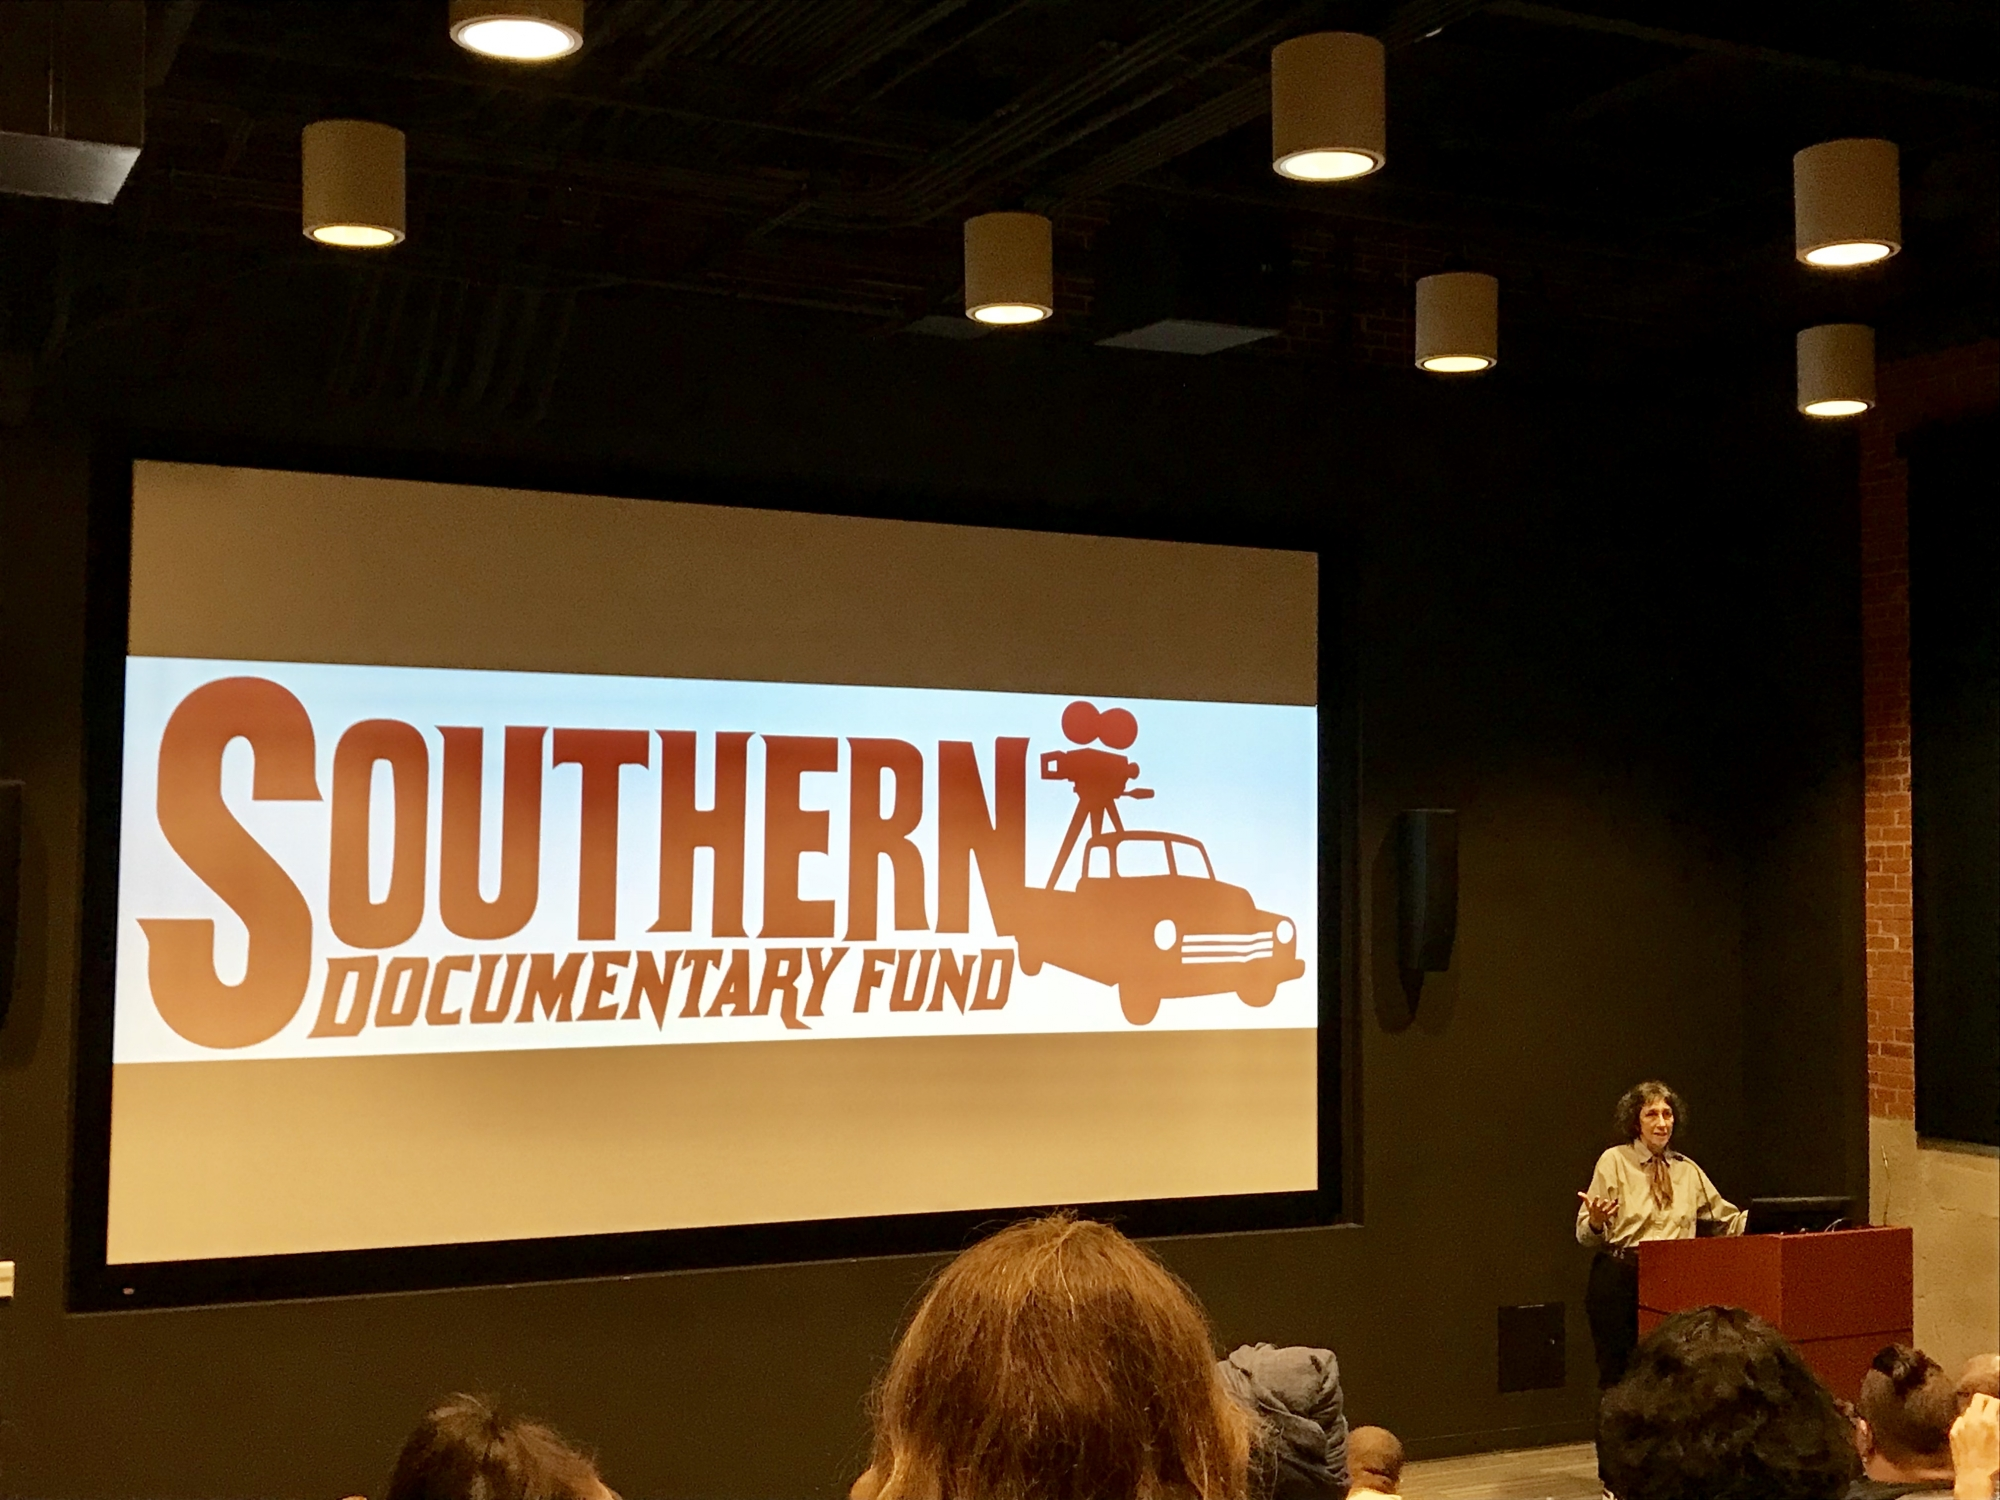 Naomi Walker. Executive Director, Southern Documentary Fund